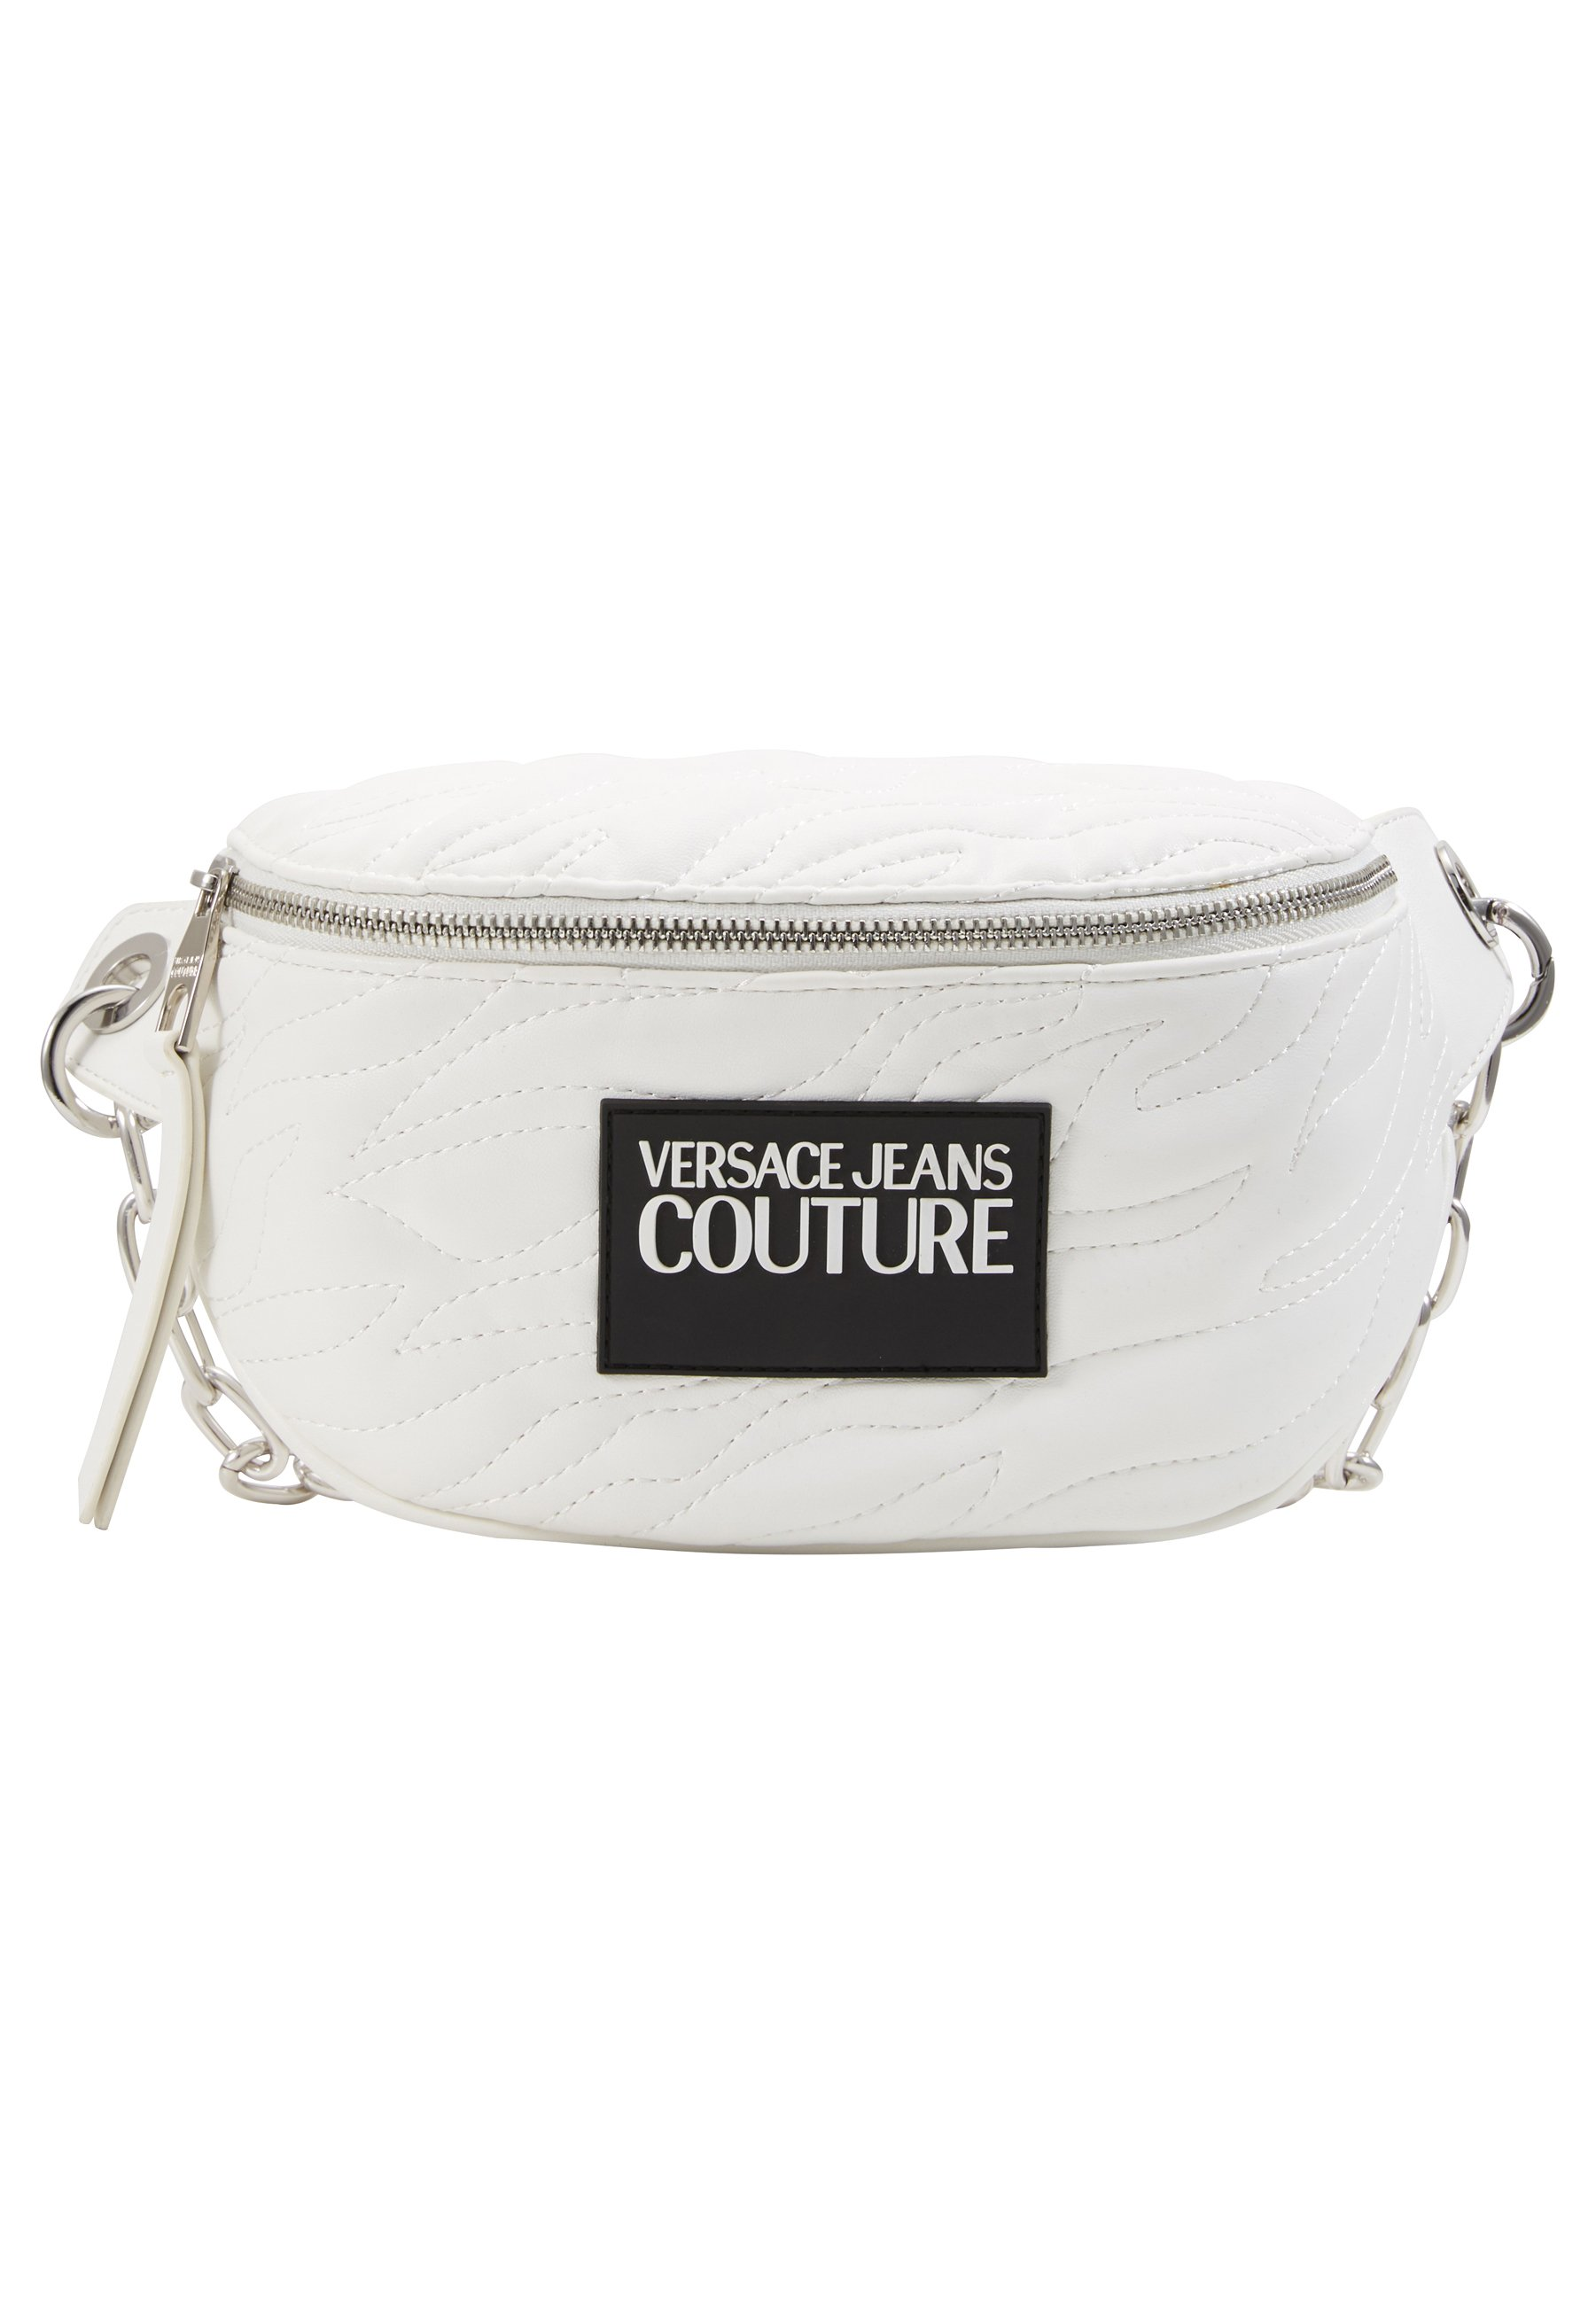 Versace Jeans Couture Quilted Belt Bag - Sac Banane Bianco